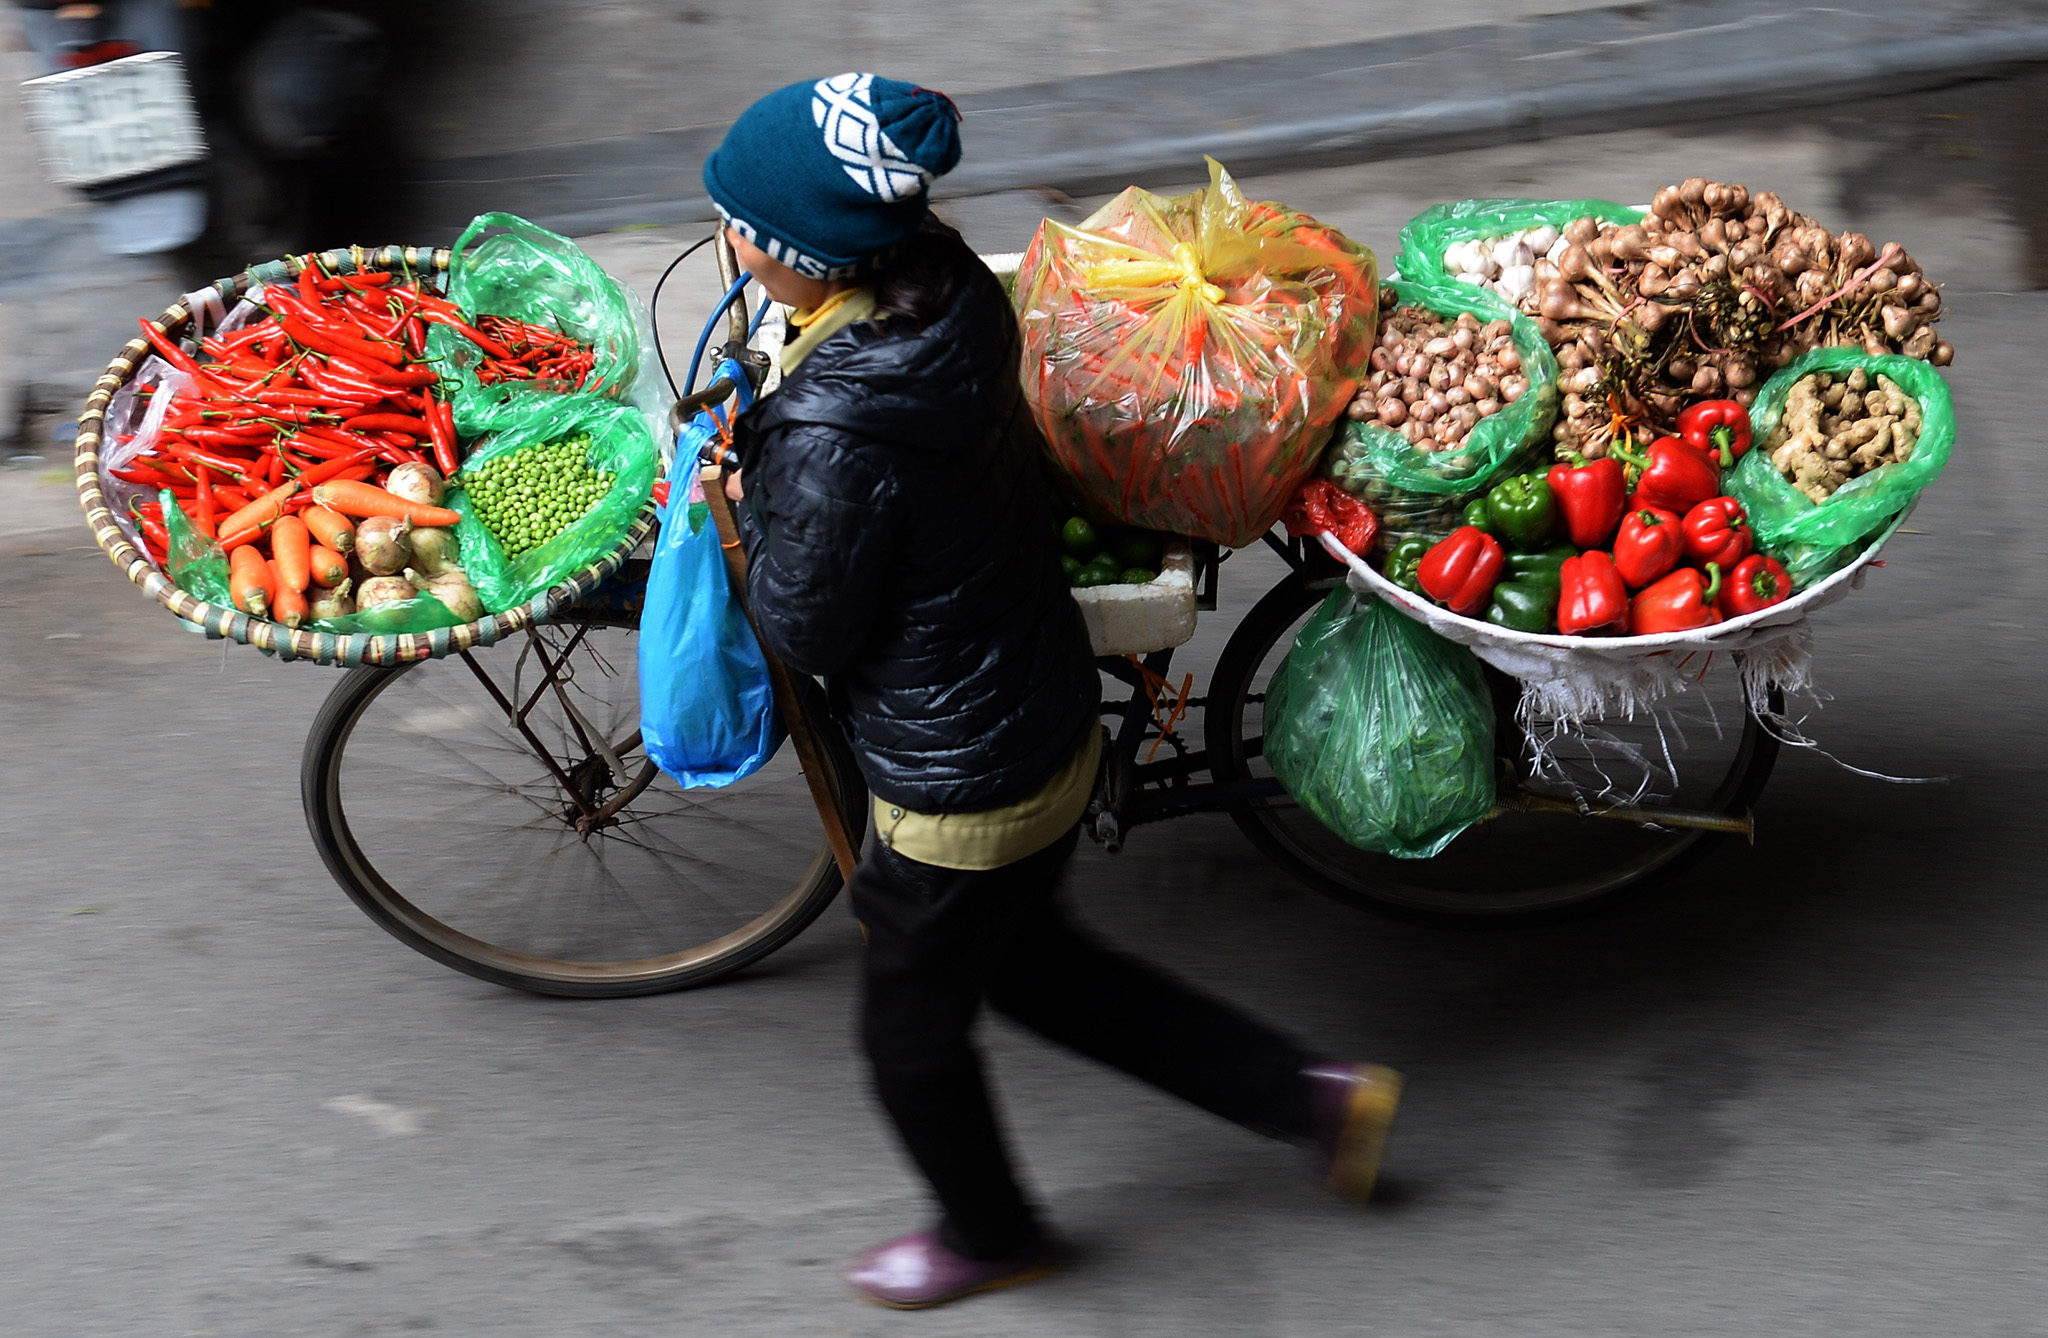 A vendor sells vegetables along a street in downtown Hanoi, as Vietnamese prepare to celebrate the Lunar New Year